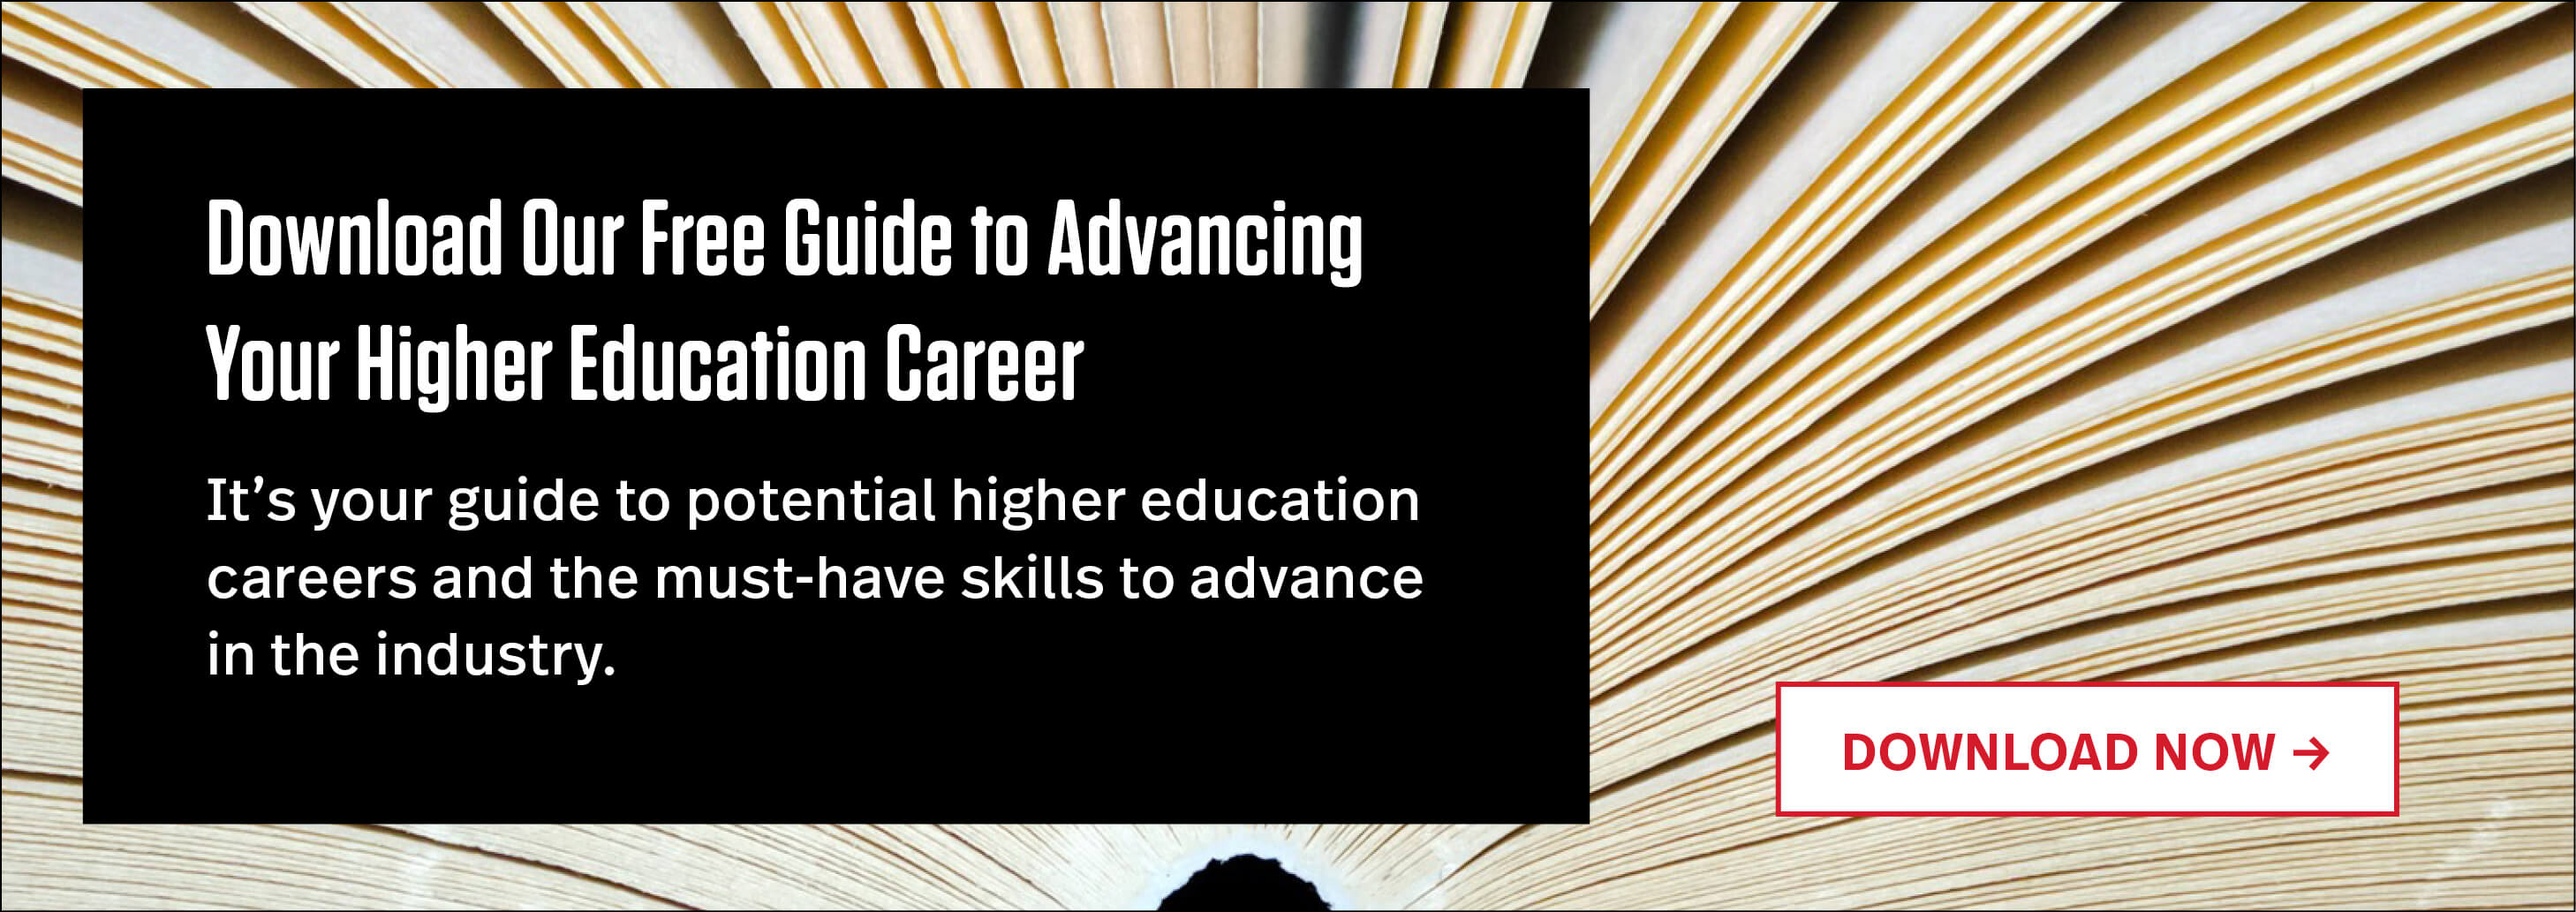 """Download Our Free Guide to Advancing in Higher Education"""" width="""